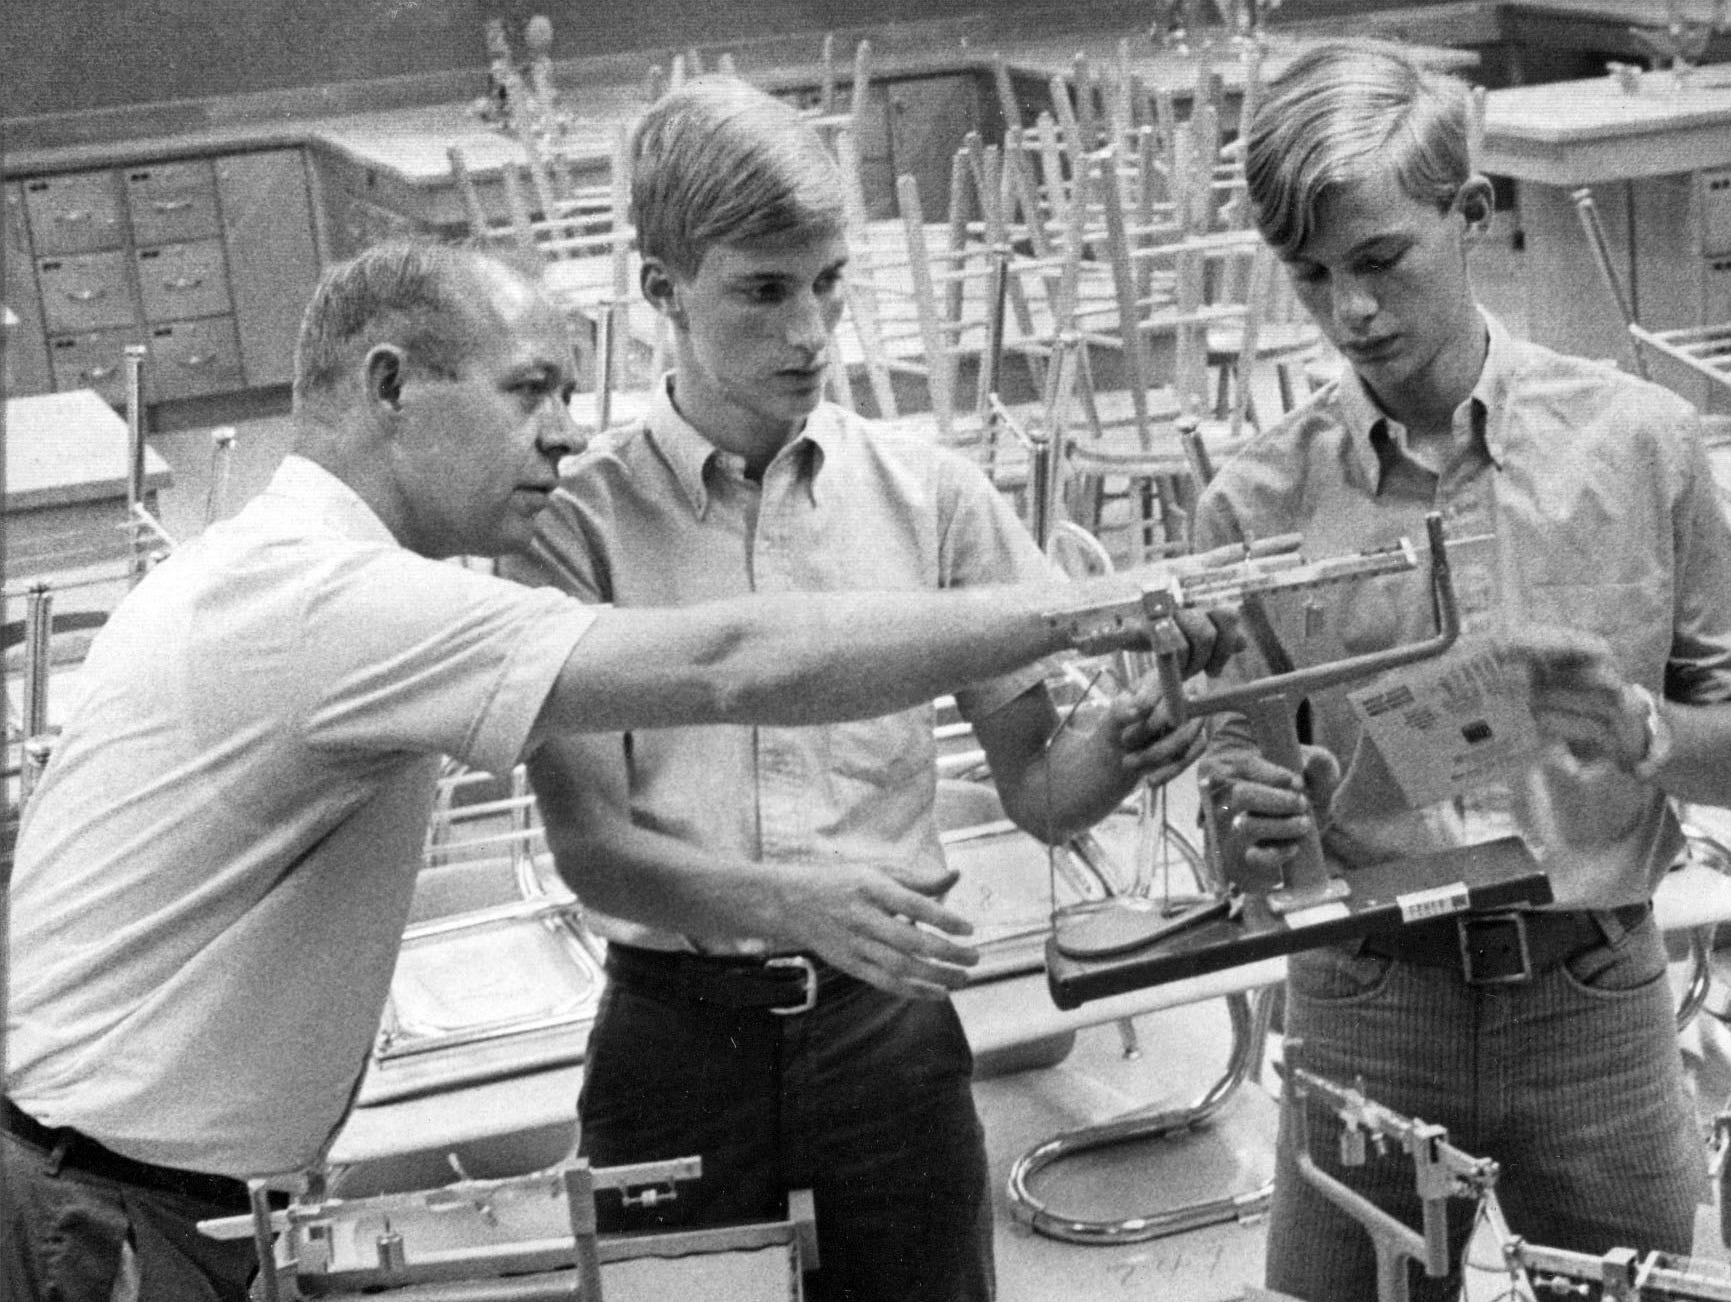 Robert Weaver (left) head of the science department and John Marshall High School and Jay and Ray Johnson examine lab equipment for the new school in 1967.